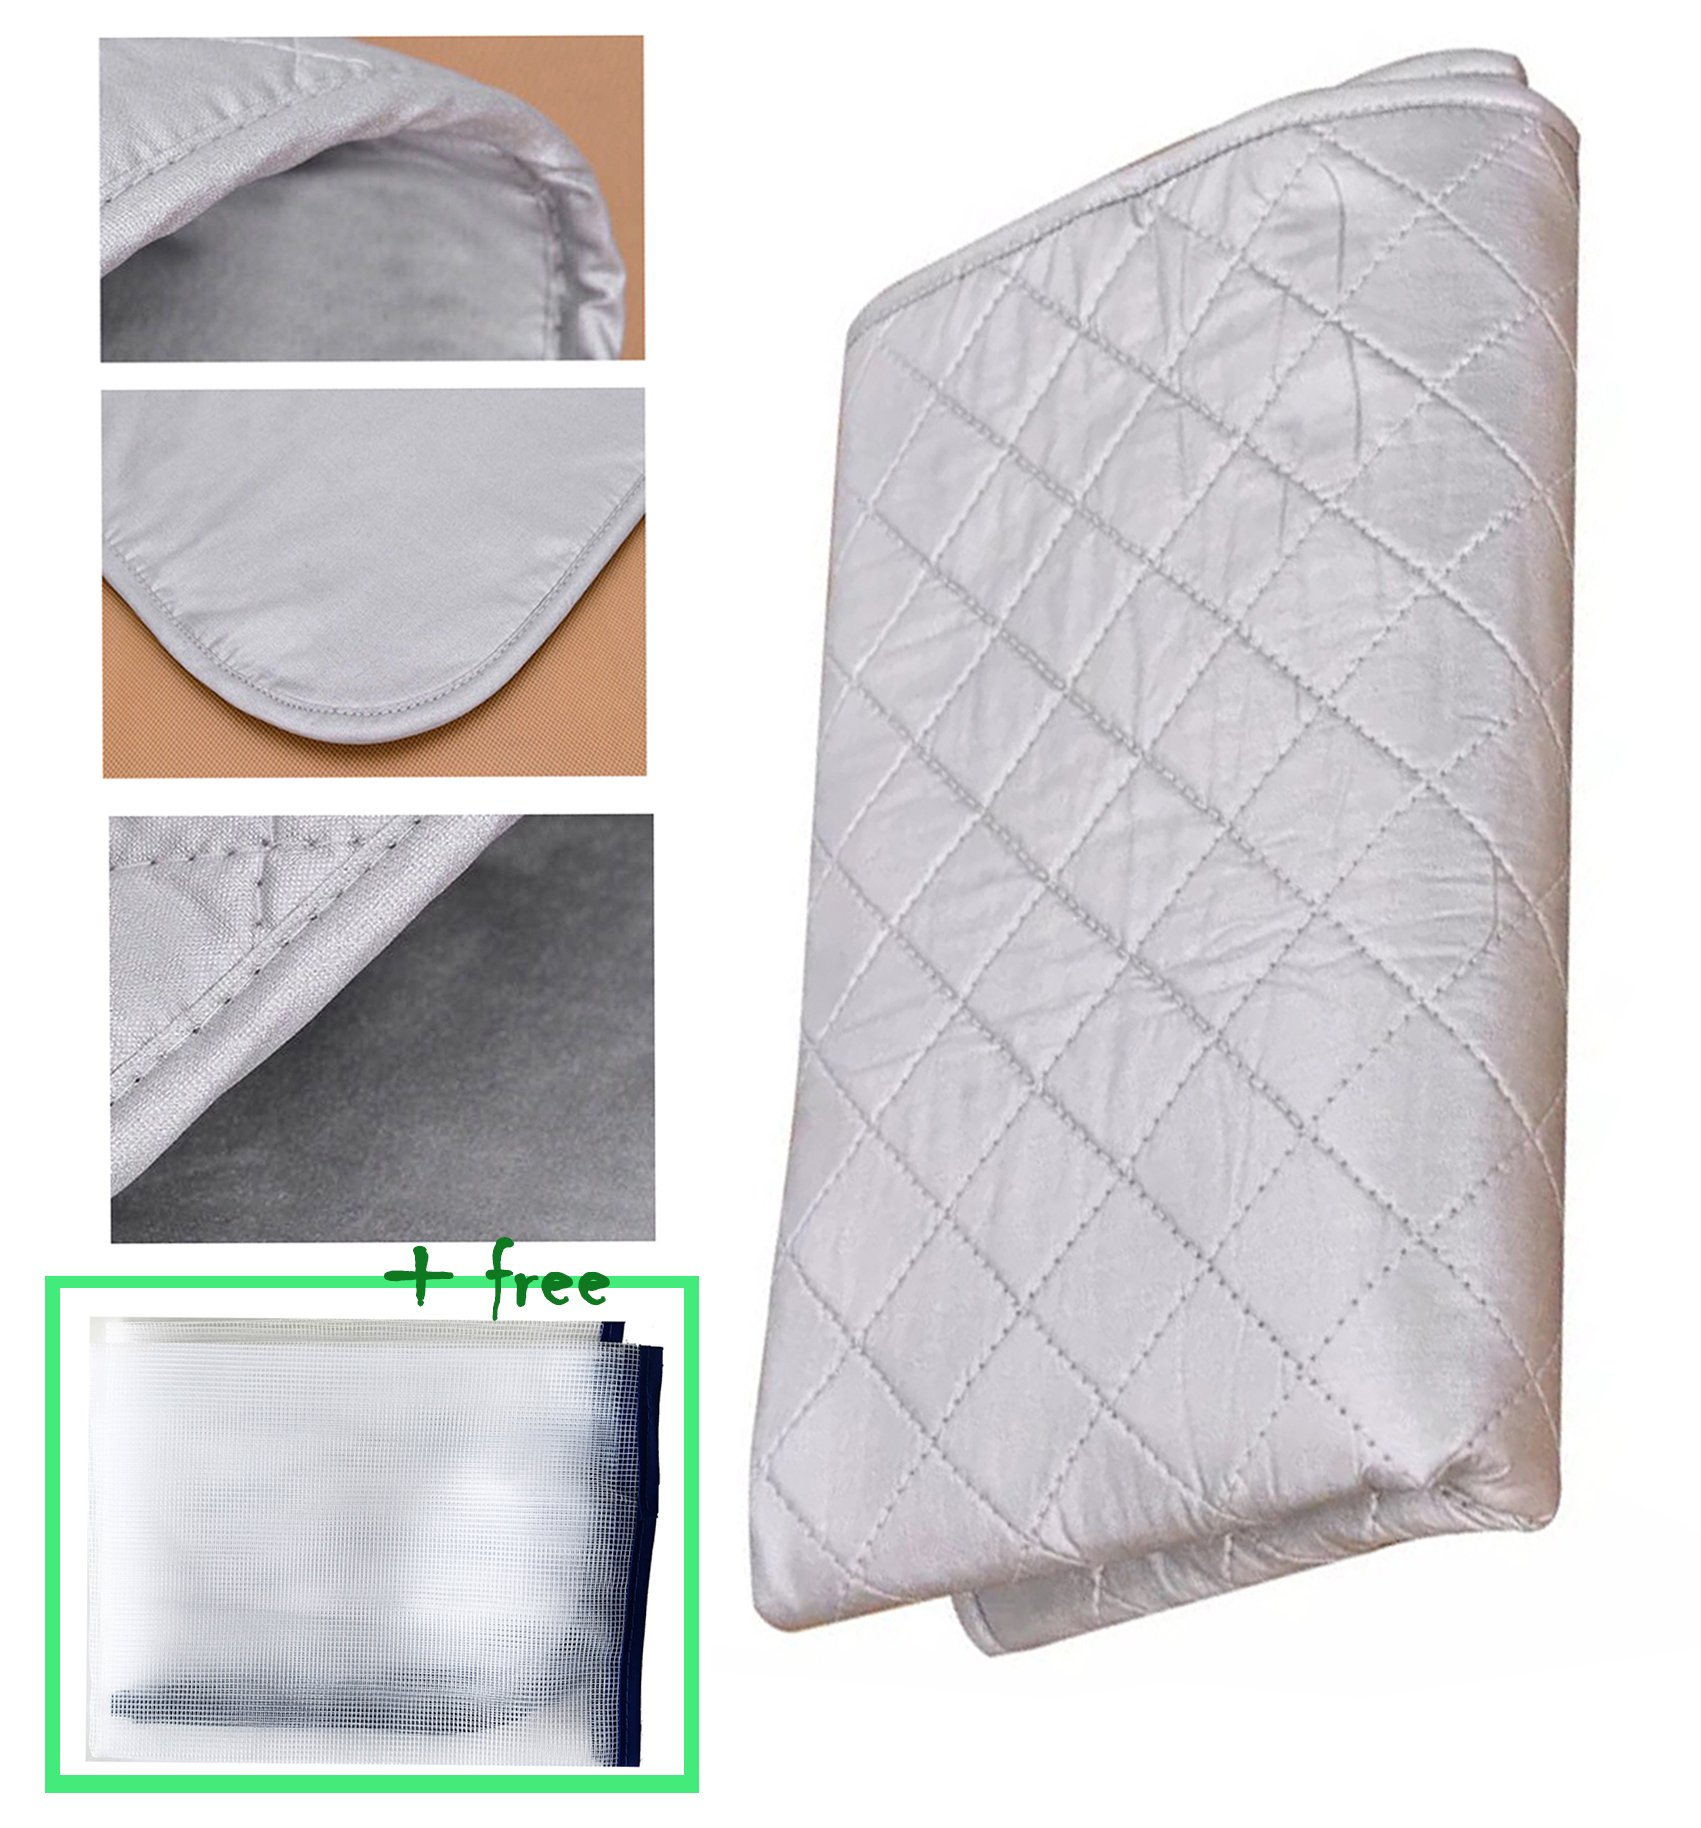 [Upgraded] Premium Ironing Blanket/Mat/Board Cover/Laundry Pad|33x18 inches|Portable &Double-side Using &Non Skid &No Shape Left| iron anywhere|Great for Travel&Home| Protective Mesh Gift Included